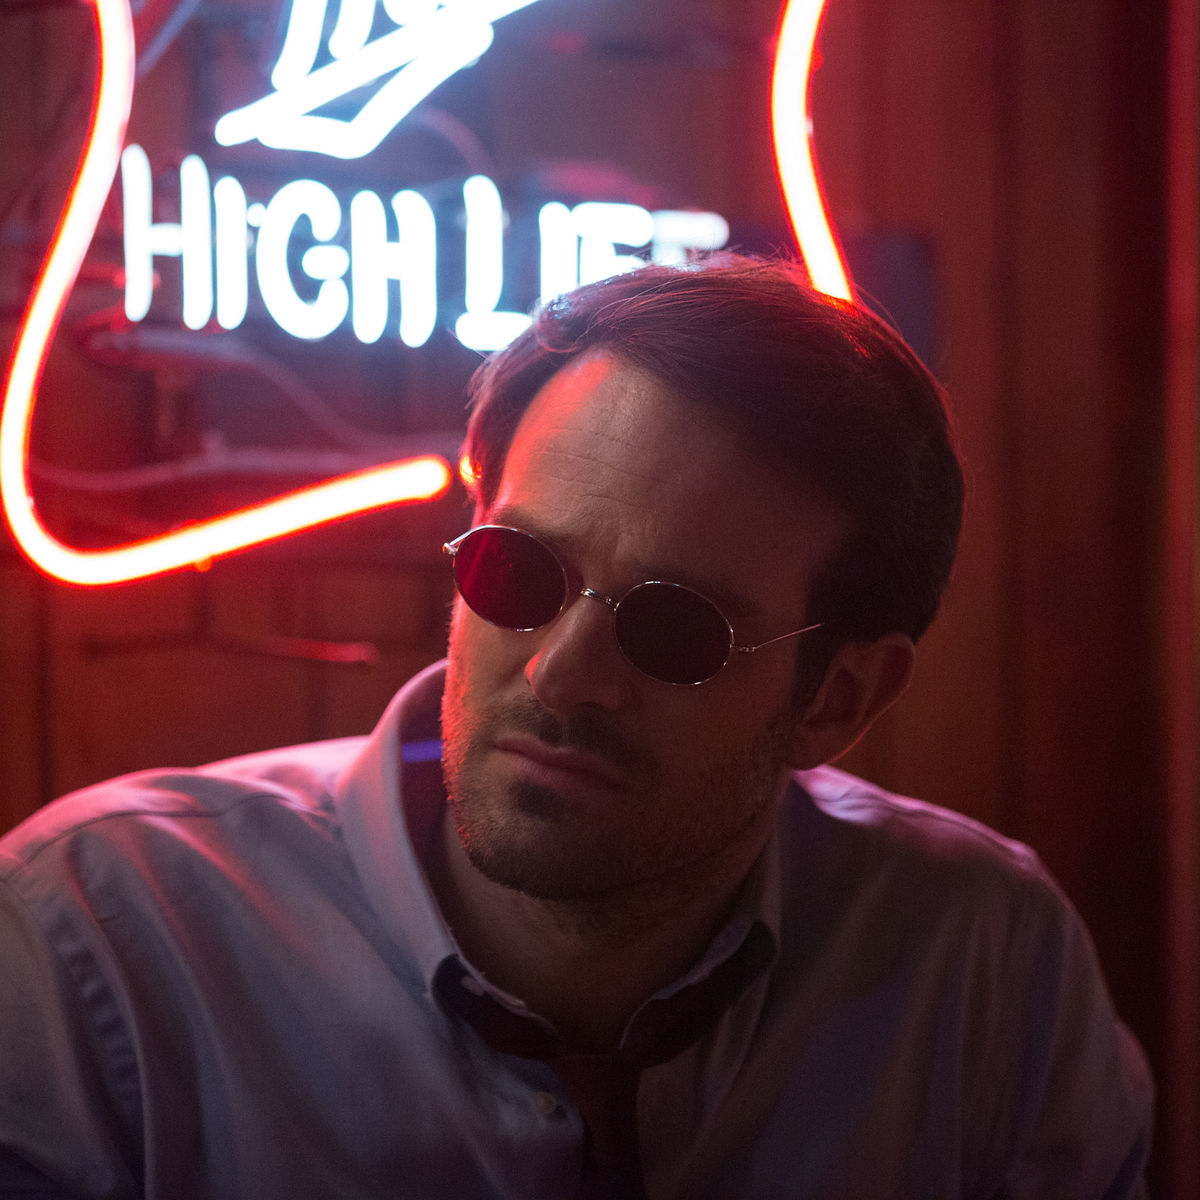 'Daredevil' Season 3 Teaser Trailer: Goodbye Matt Murdock, Hello Daredevil